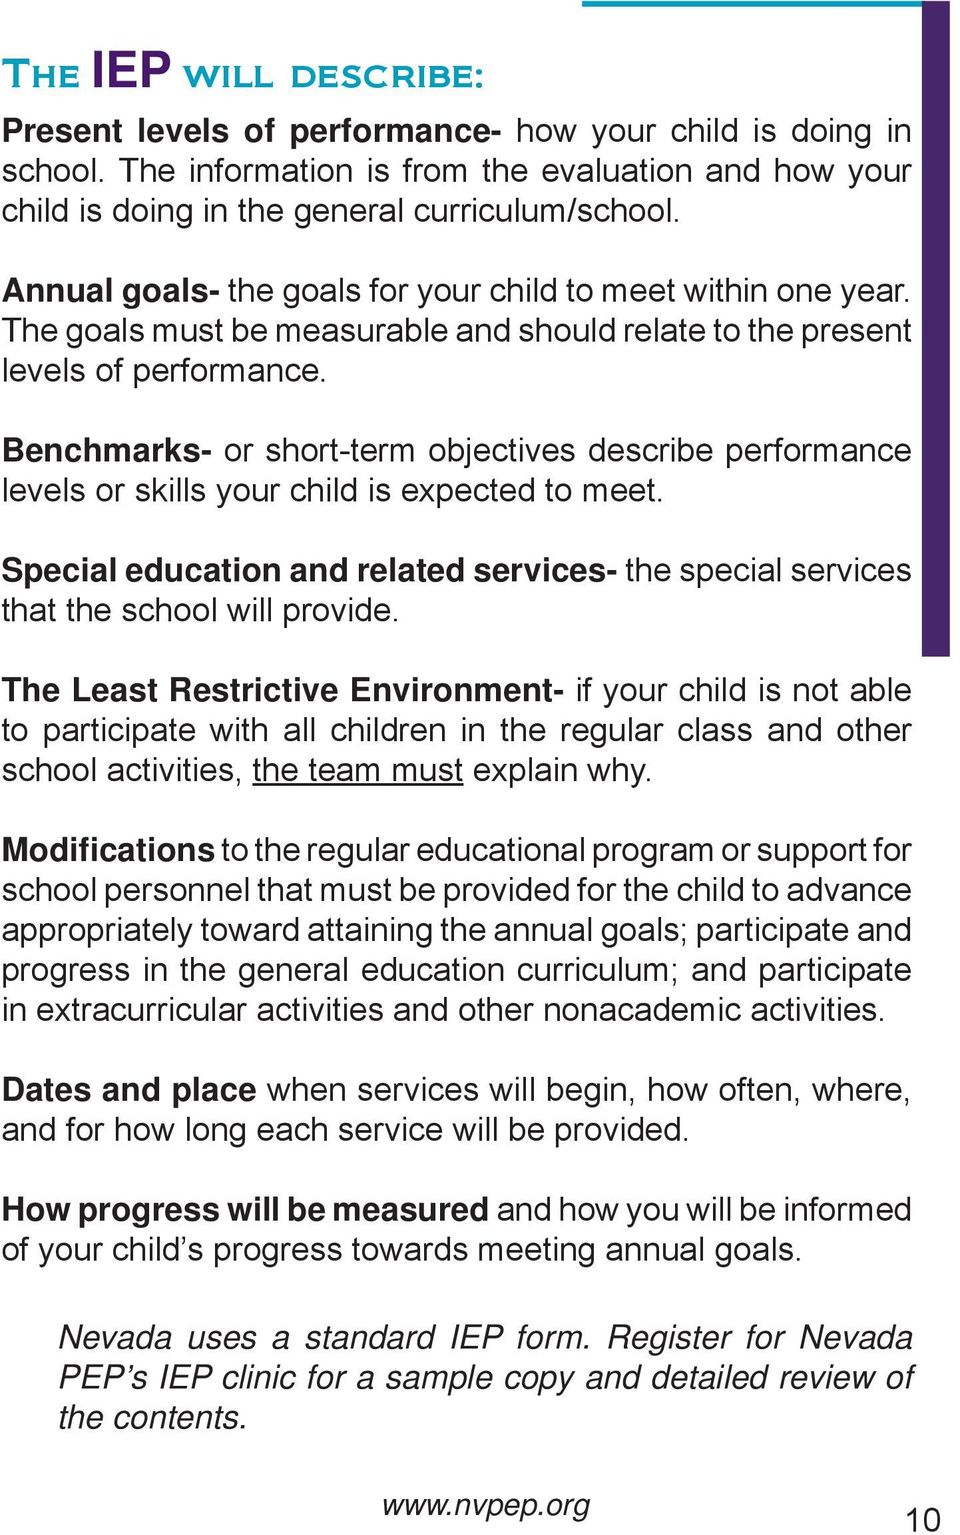 Benchmarks- or short-term objectives describe performance levels or skills your child is expected to meet. Special education and related services- the special services that the school will provide.